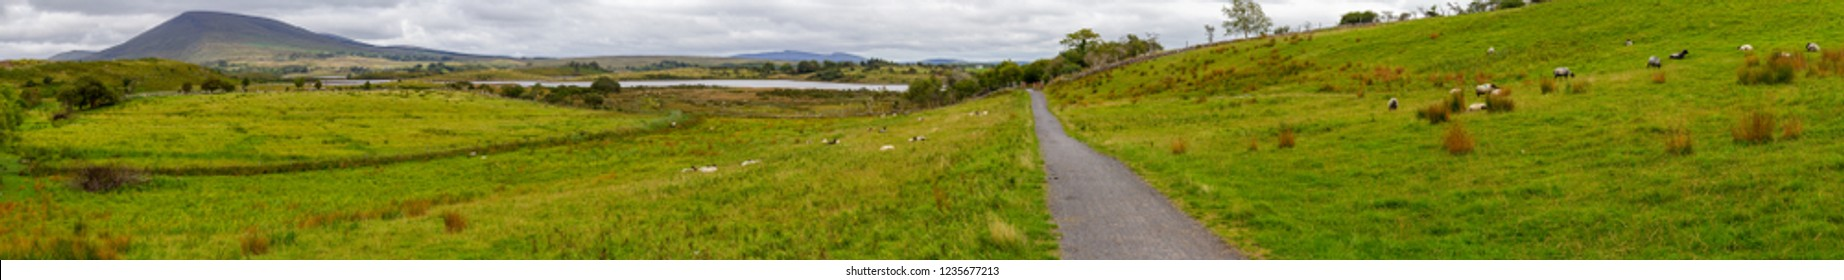 Panorama with sheep herd in a farm, lake and mountains in background, Great Western Greenway trail, Ireland